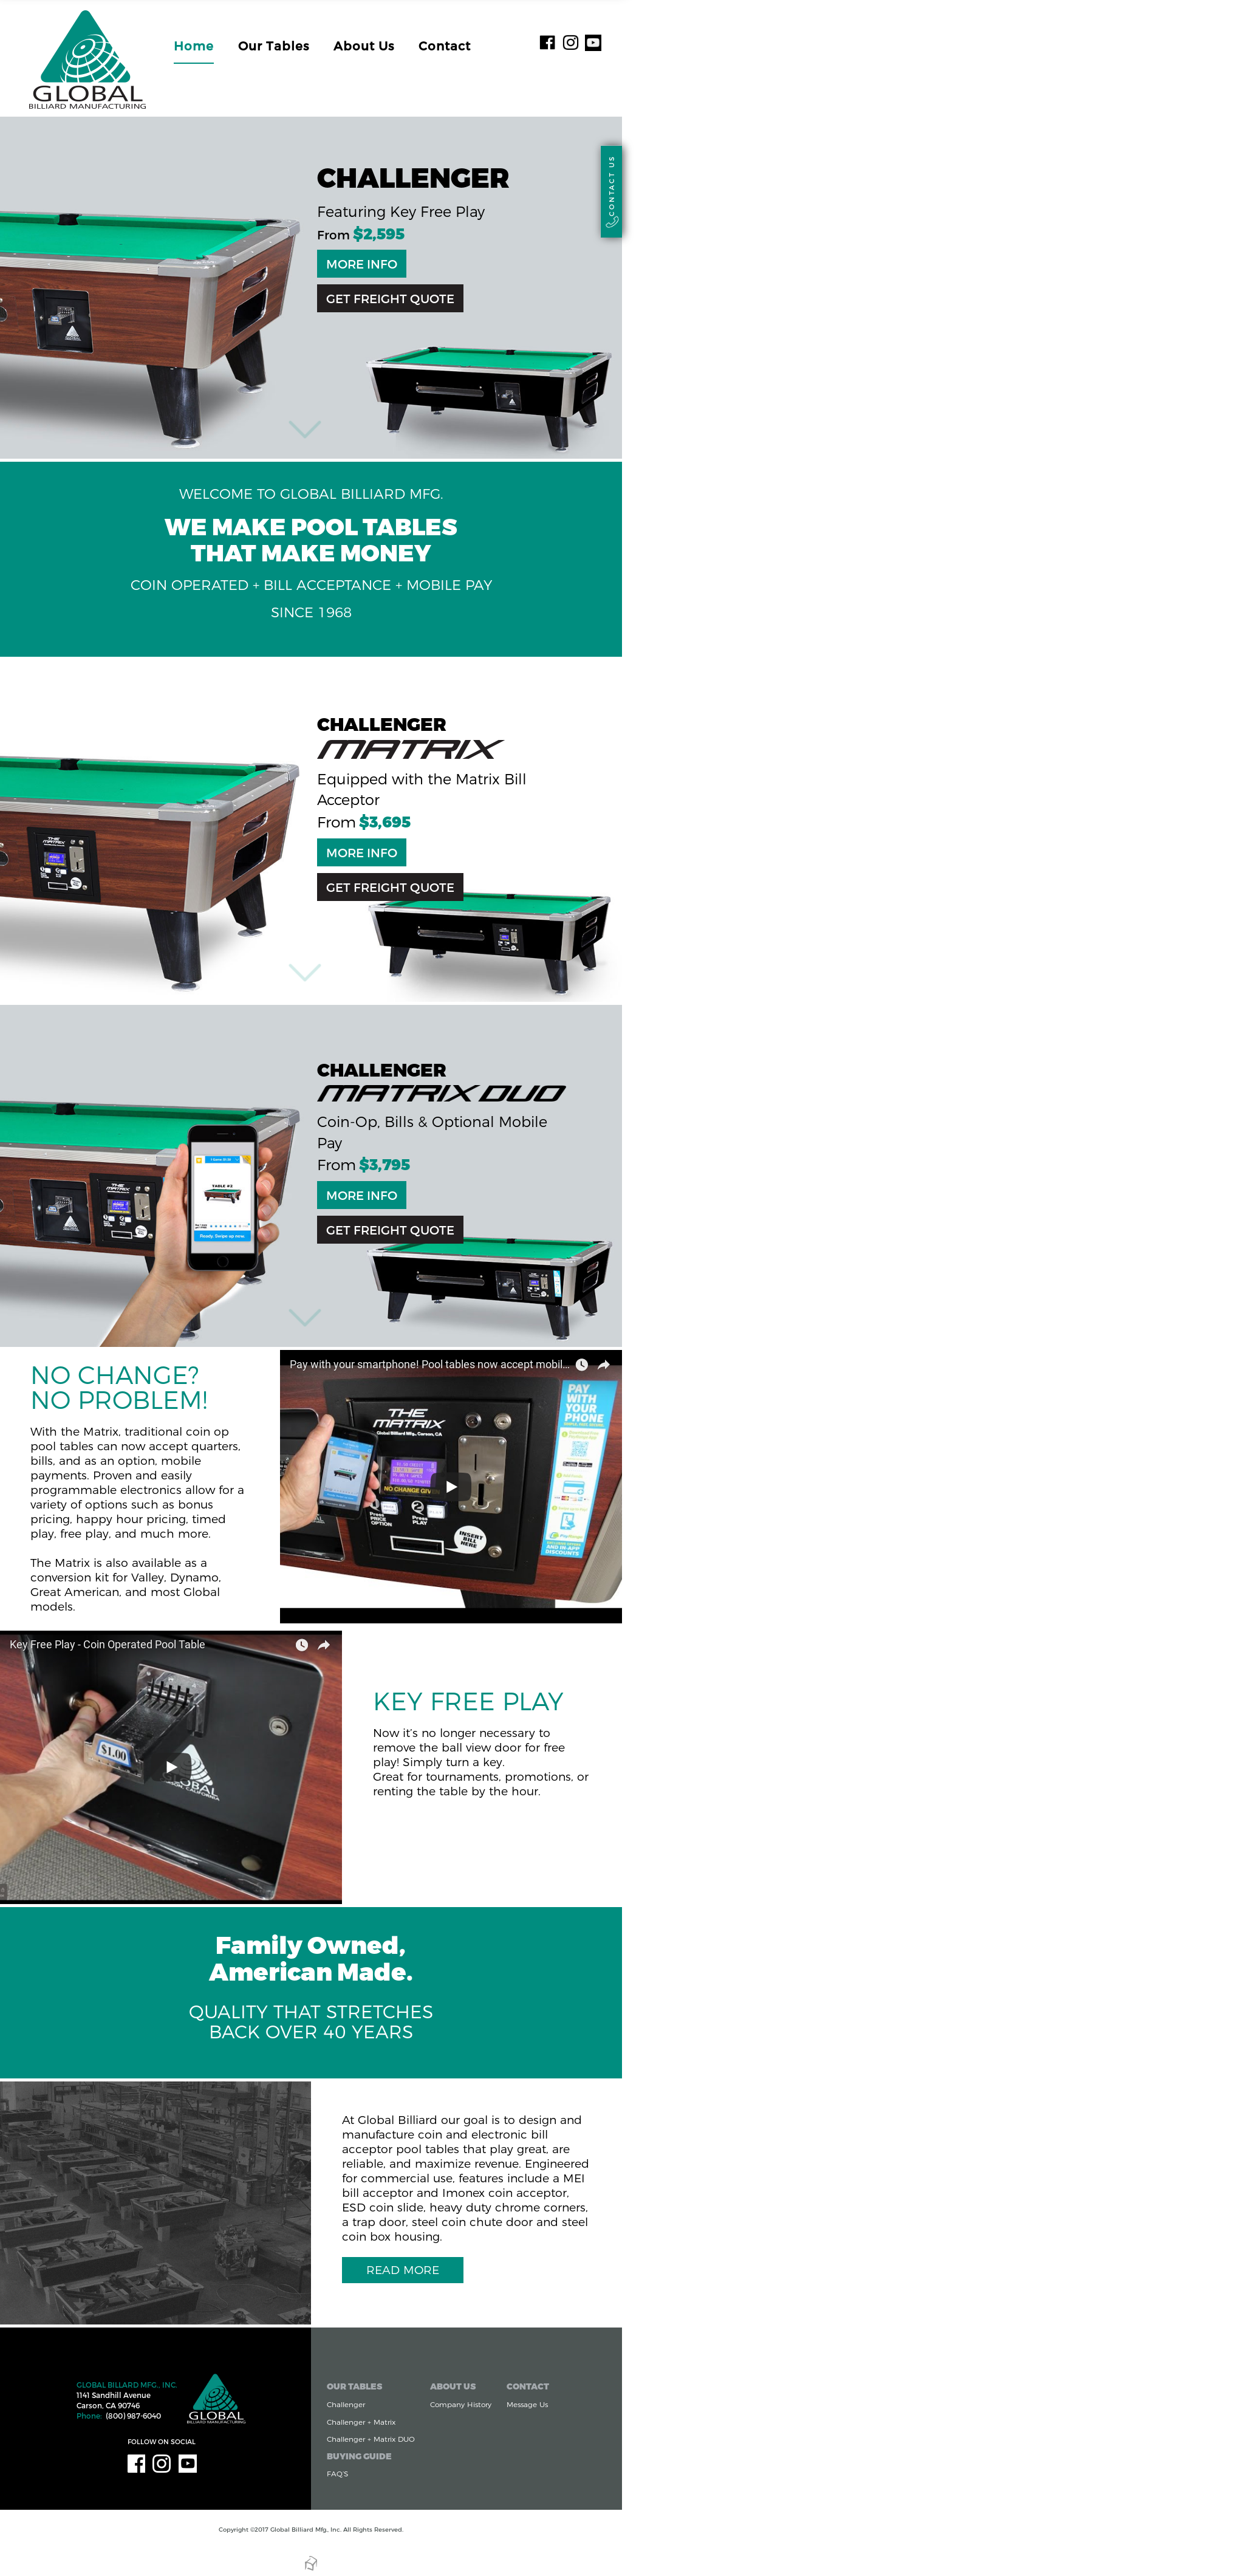 Coin Operated Pool Tables Competitors, Revenue and Employees